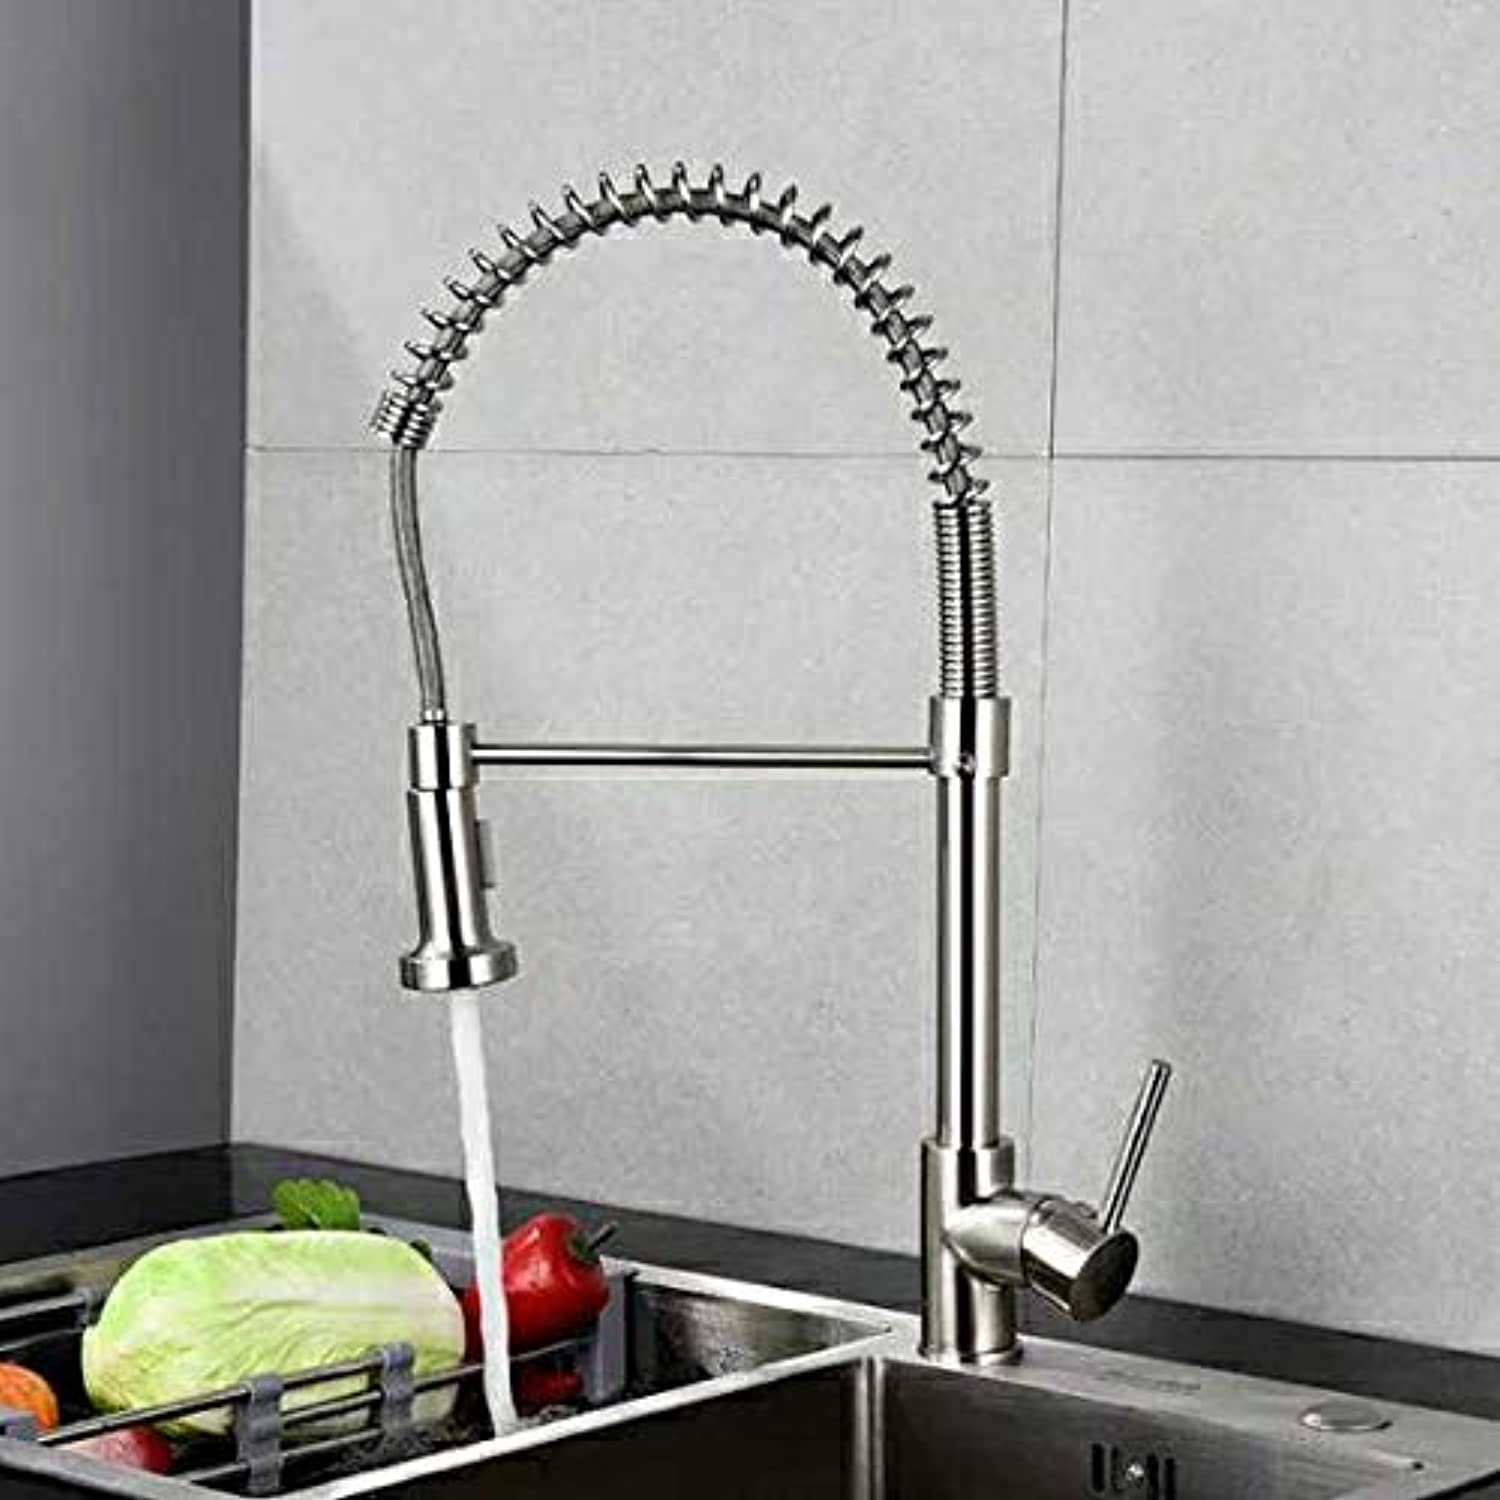 Kitchen Faucet All Copper Spring redary Faucet Dish Basin Waterproof Flower Bubbler Faucet Copper Drawing